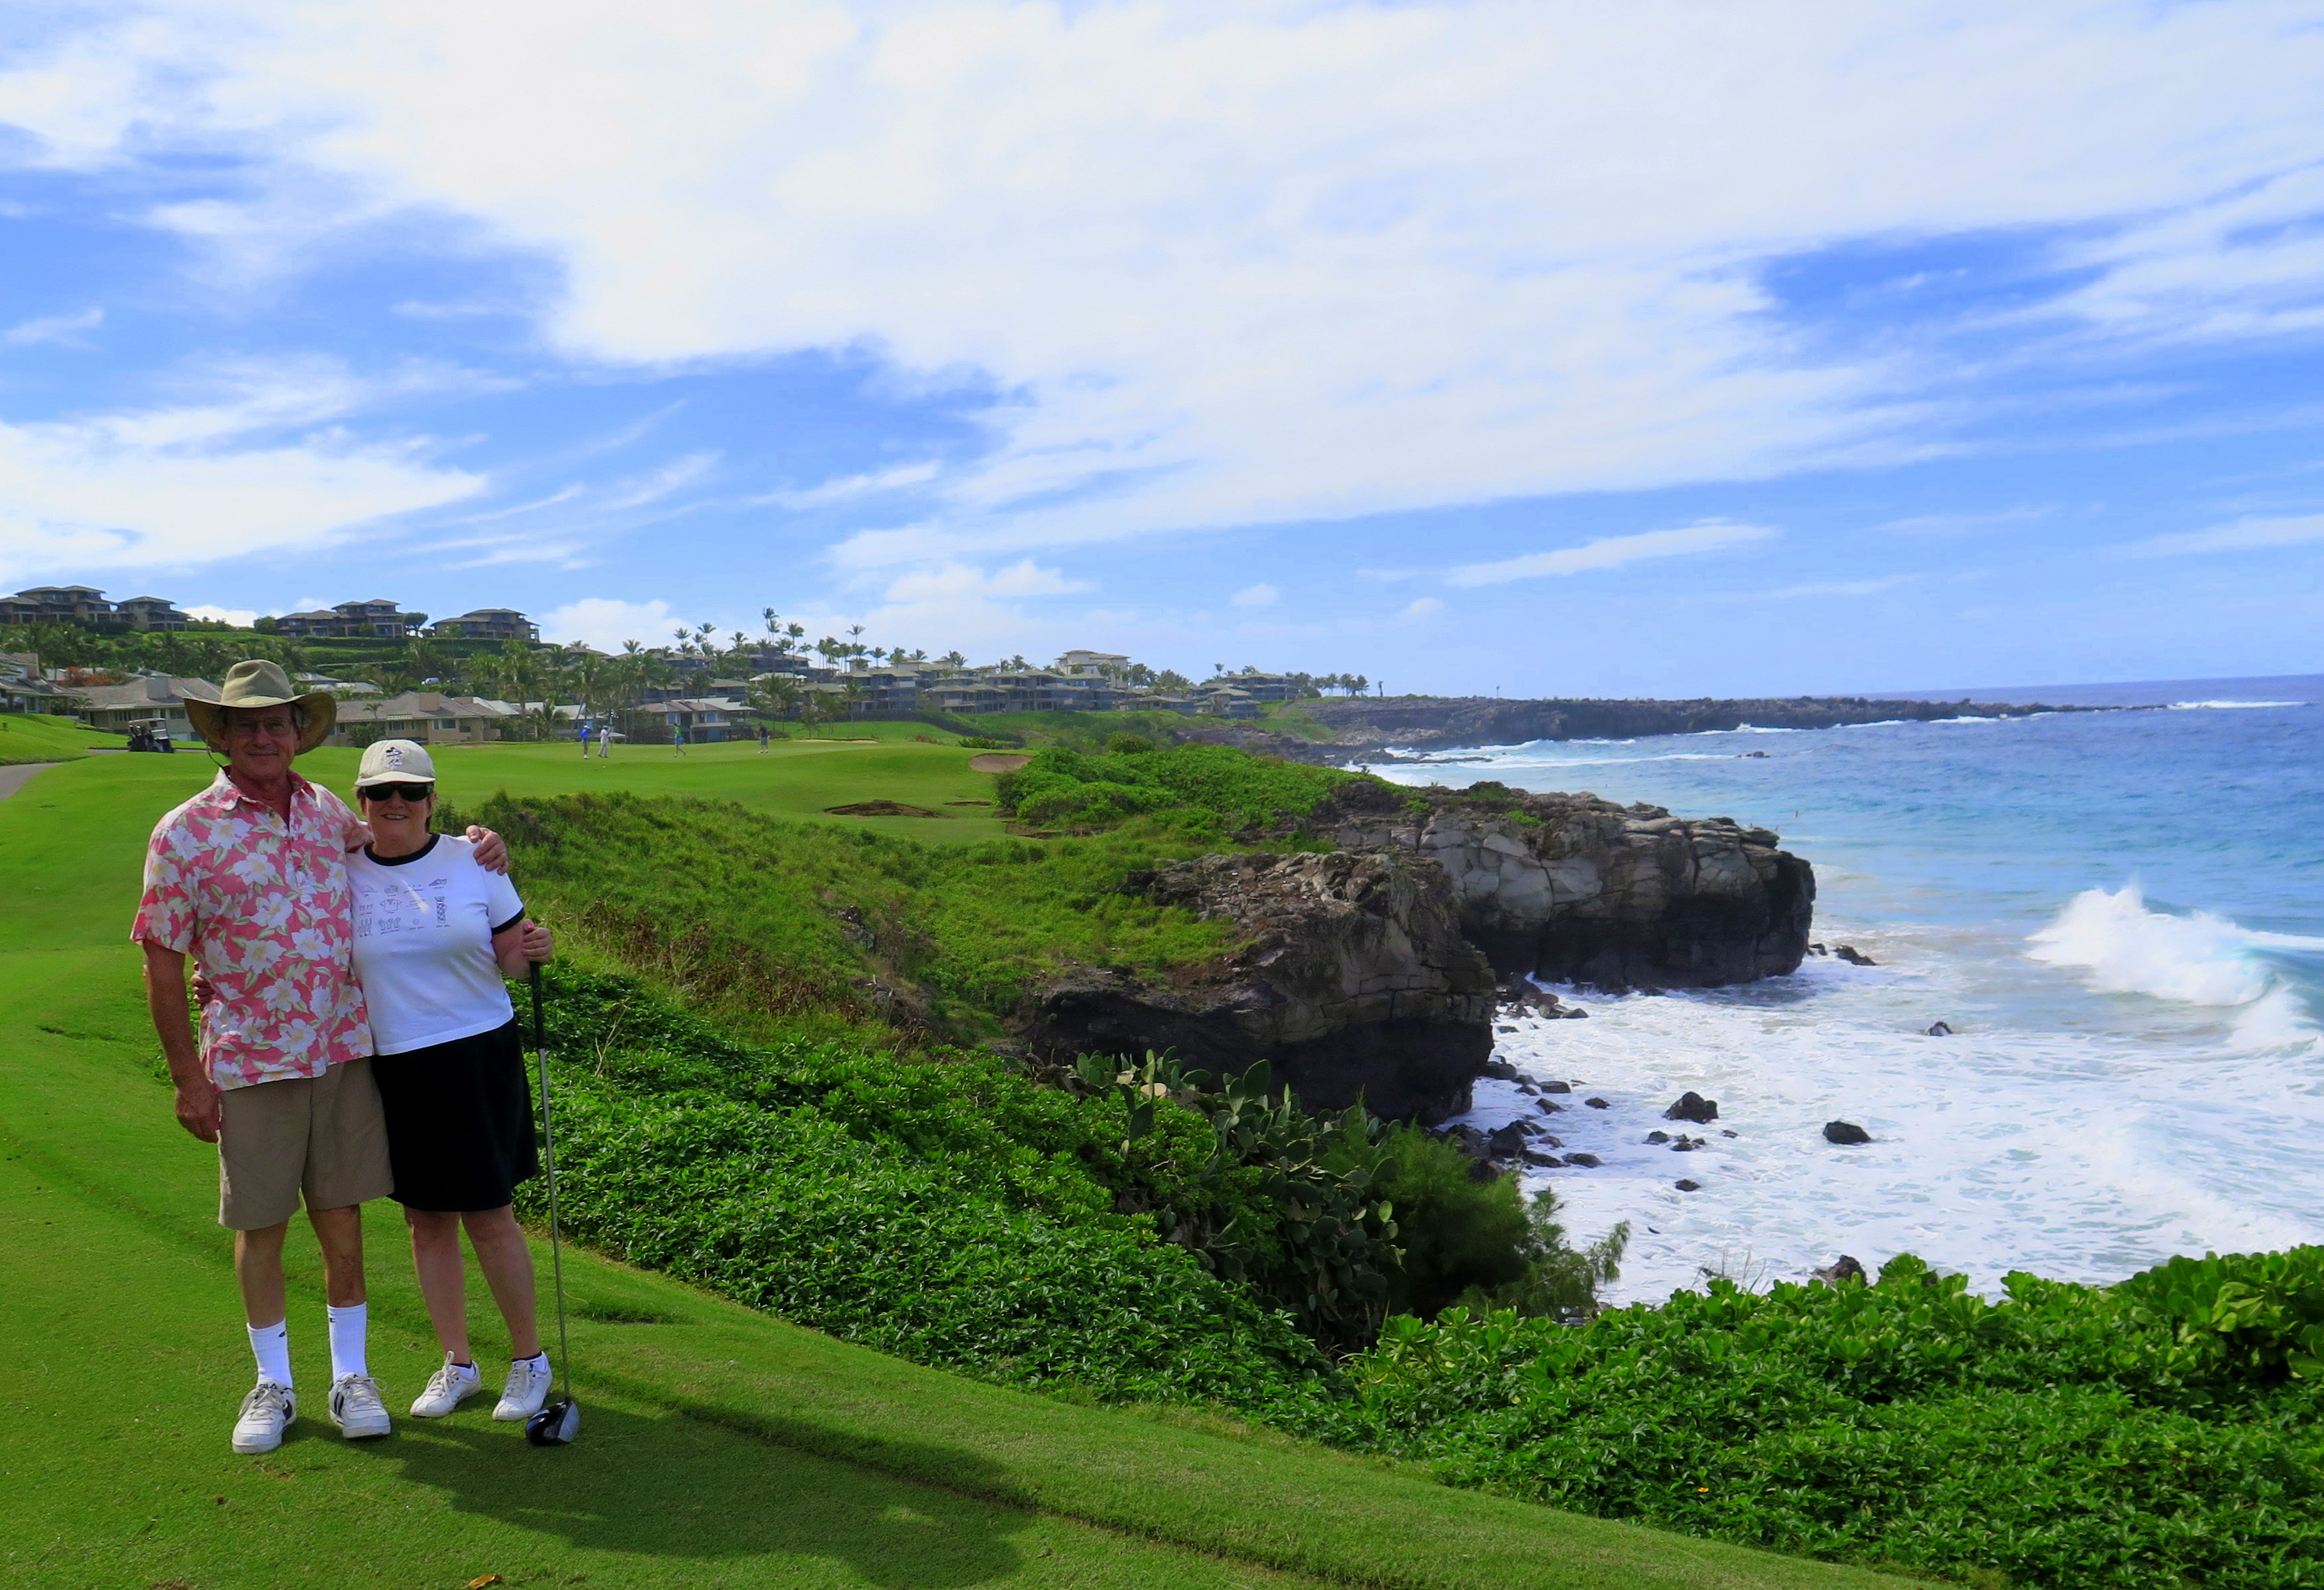 The fifth hole at Kapalua's Bay course (that's my sister and her friend in the photo) forces golfers to carry the ball over the water and onto a tricky green. Gorgeous.